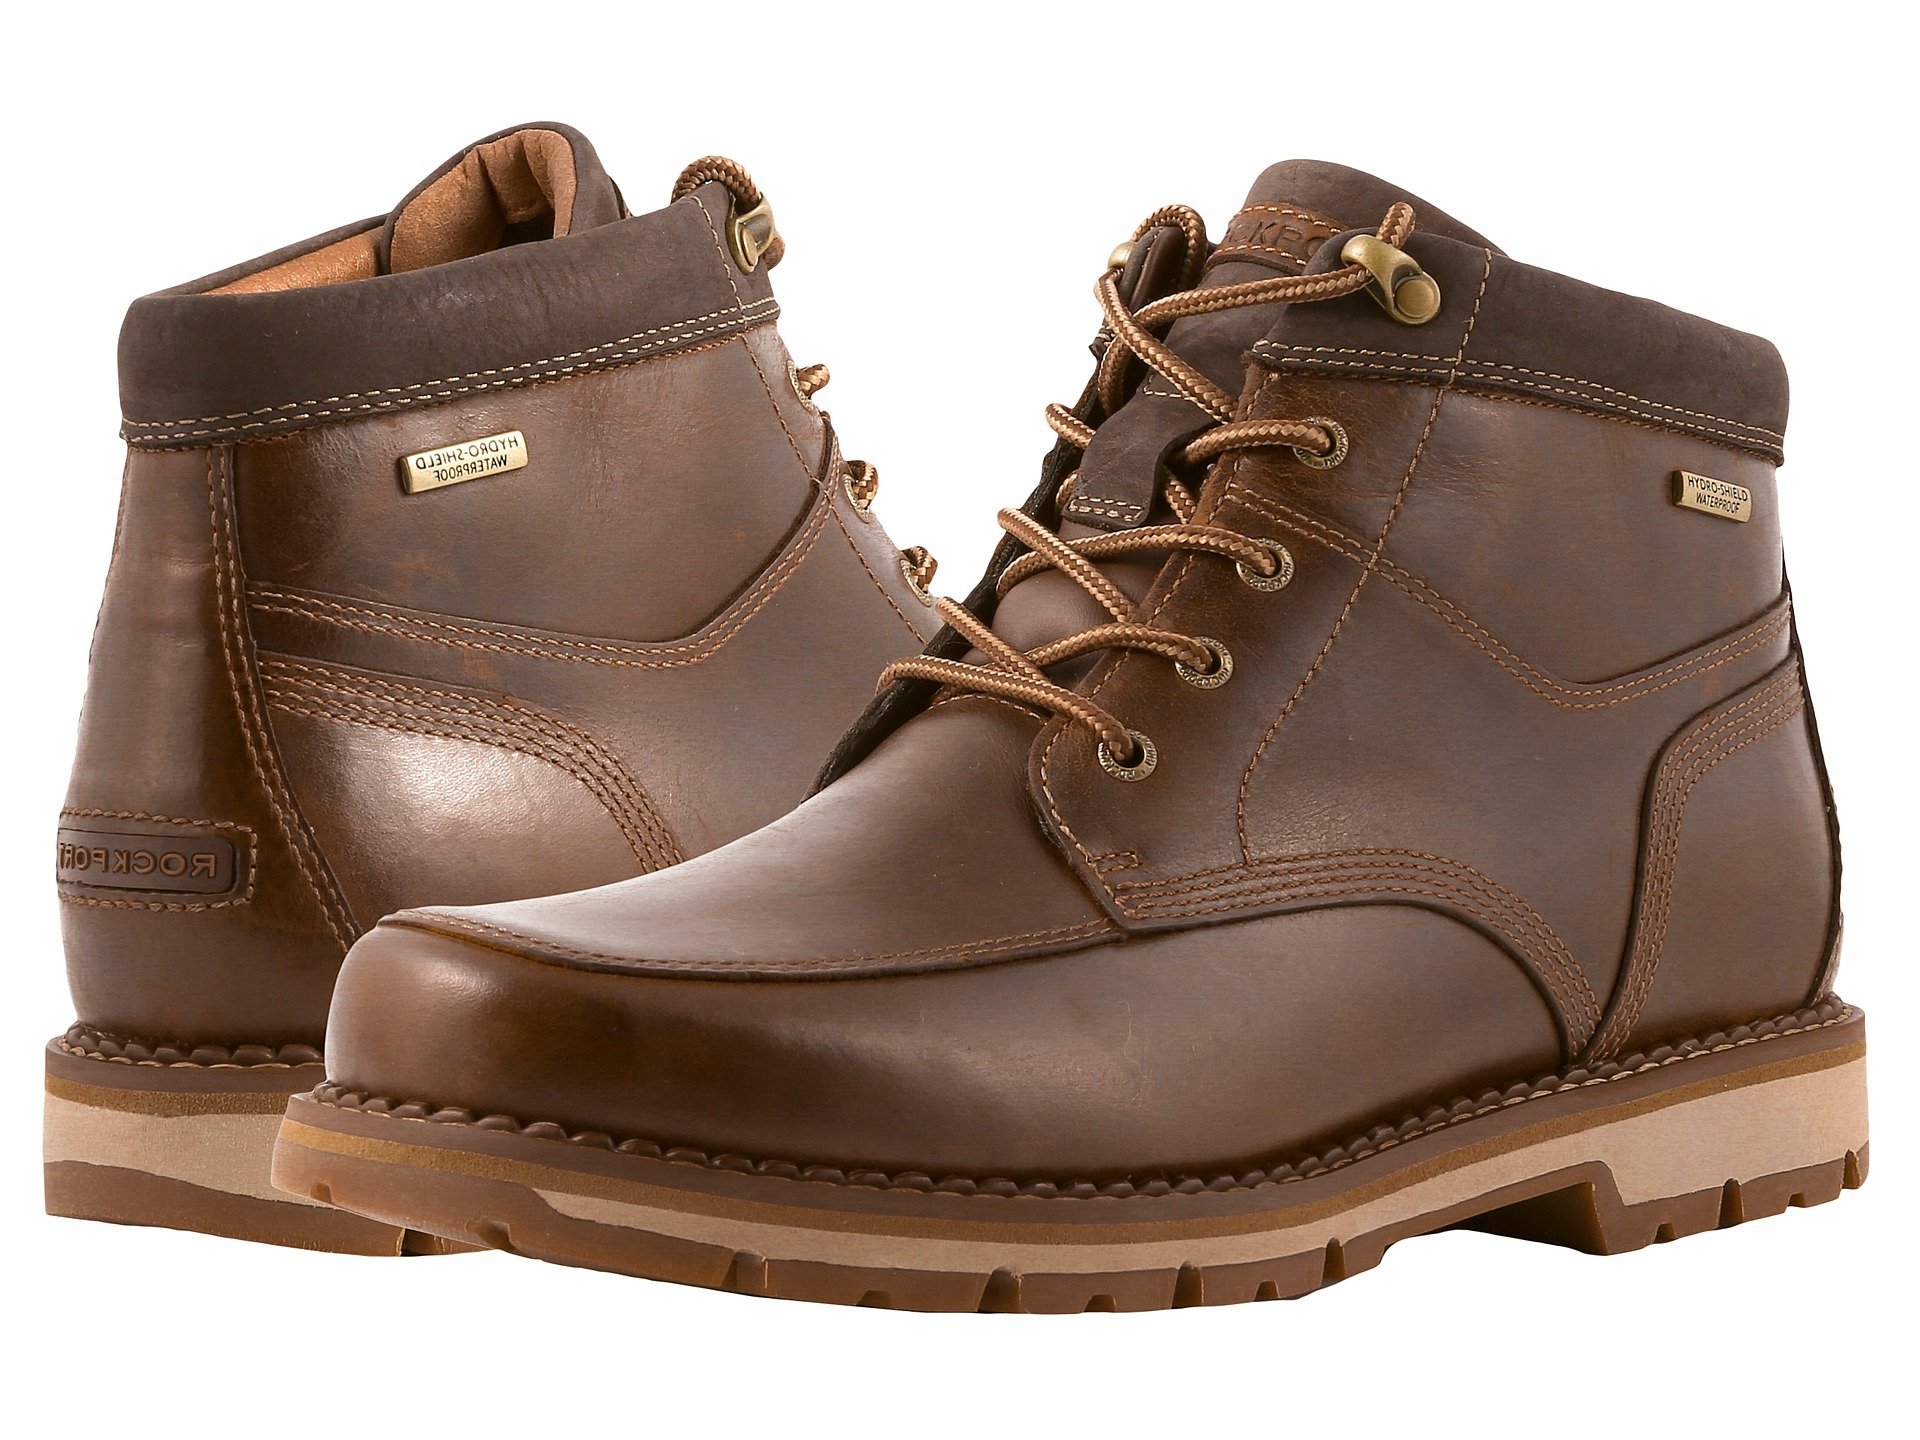 085bebad971 Men's Rockport Boots + FREE SHIPPING | Shoes | Zappos.com